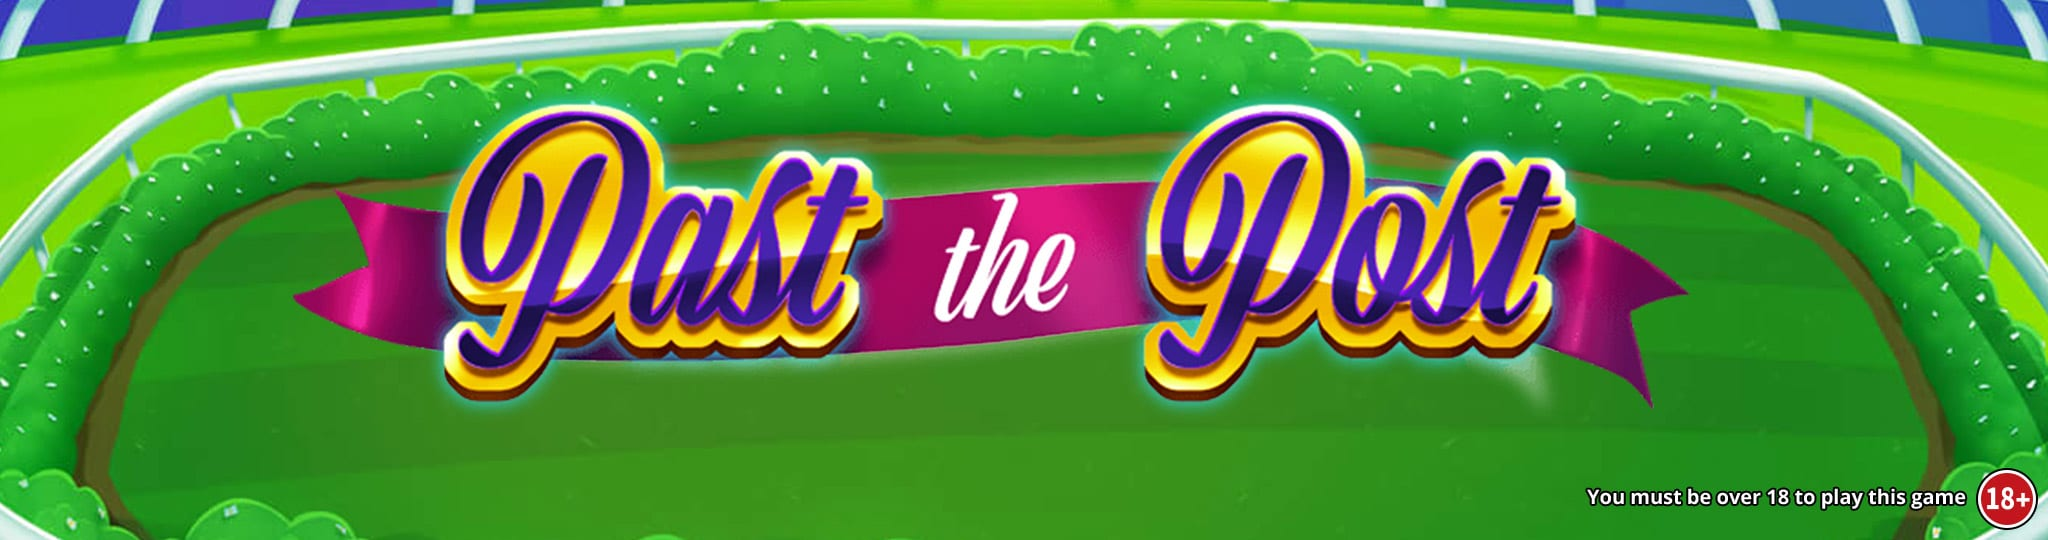 past the post slot game logo